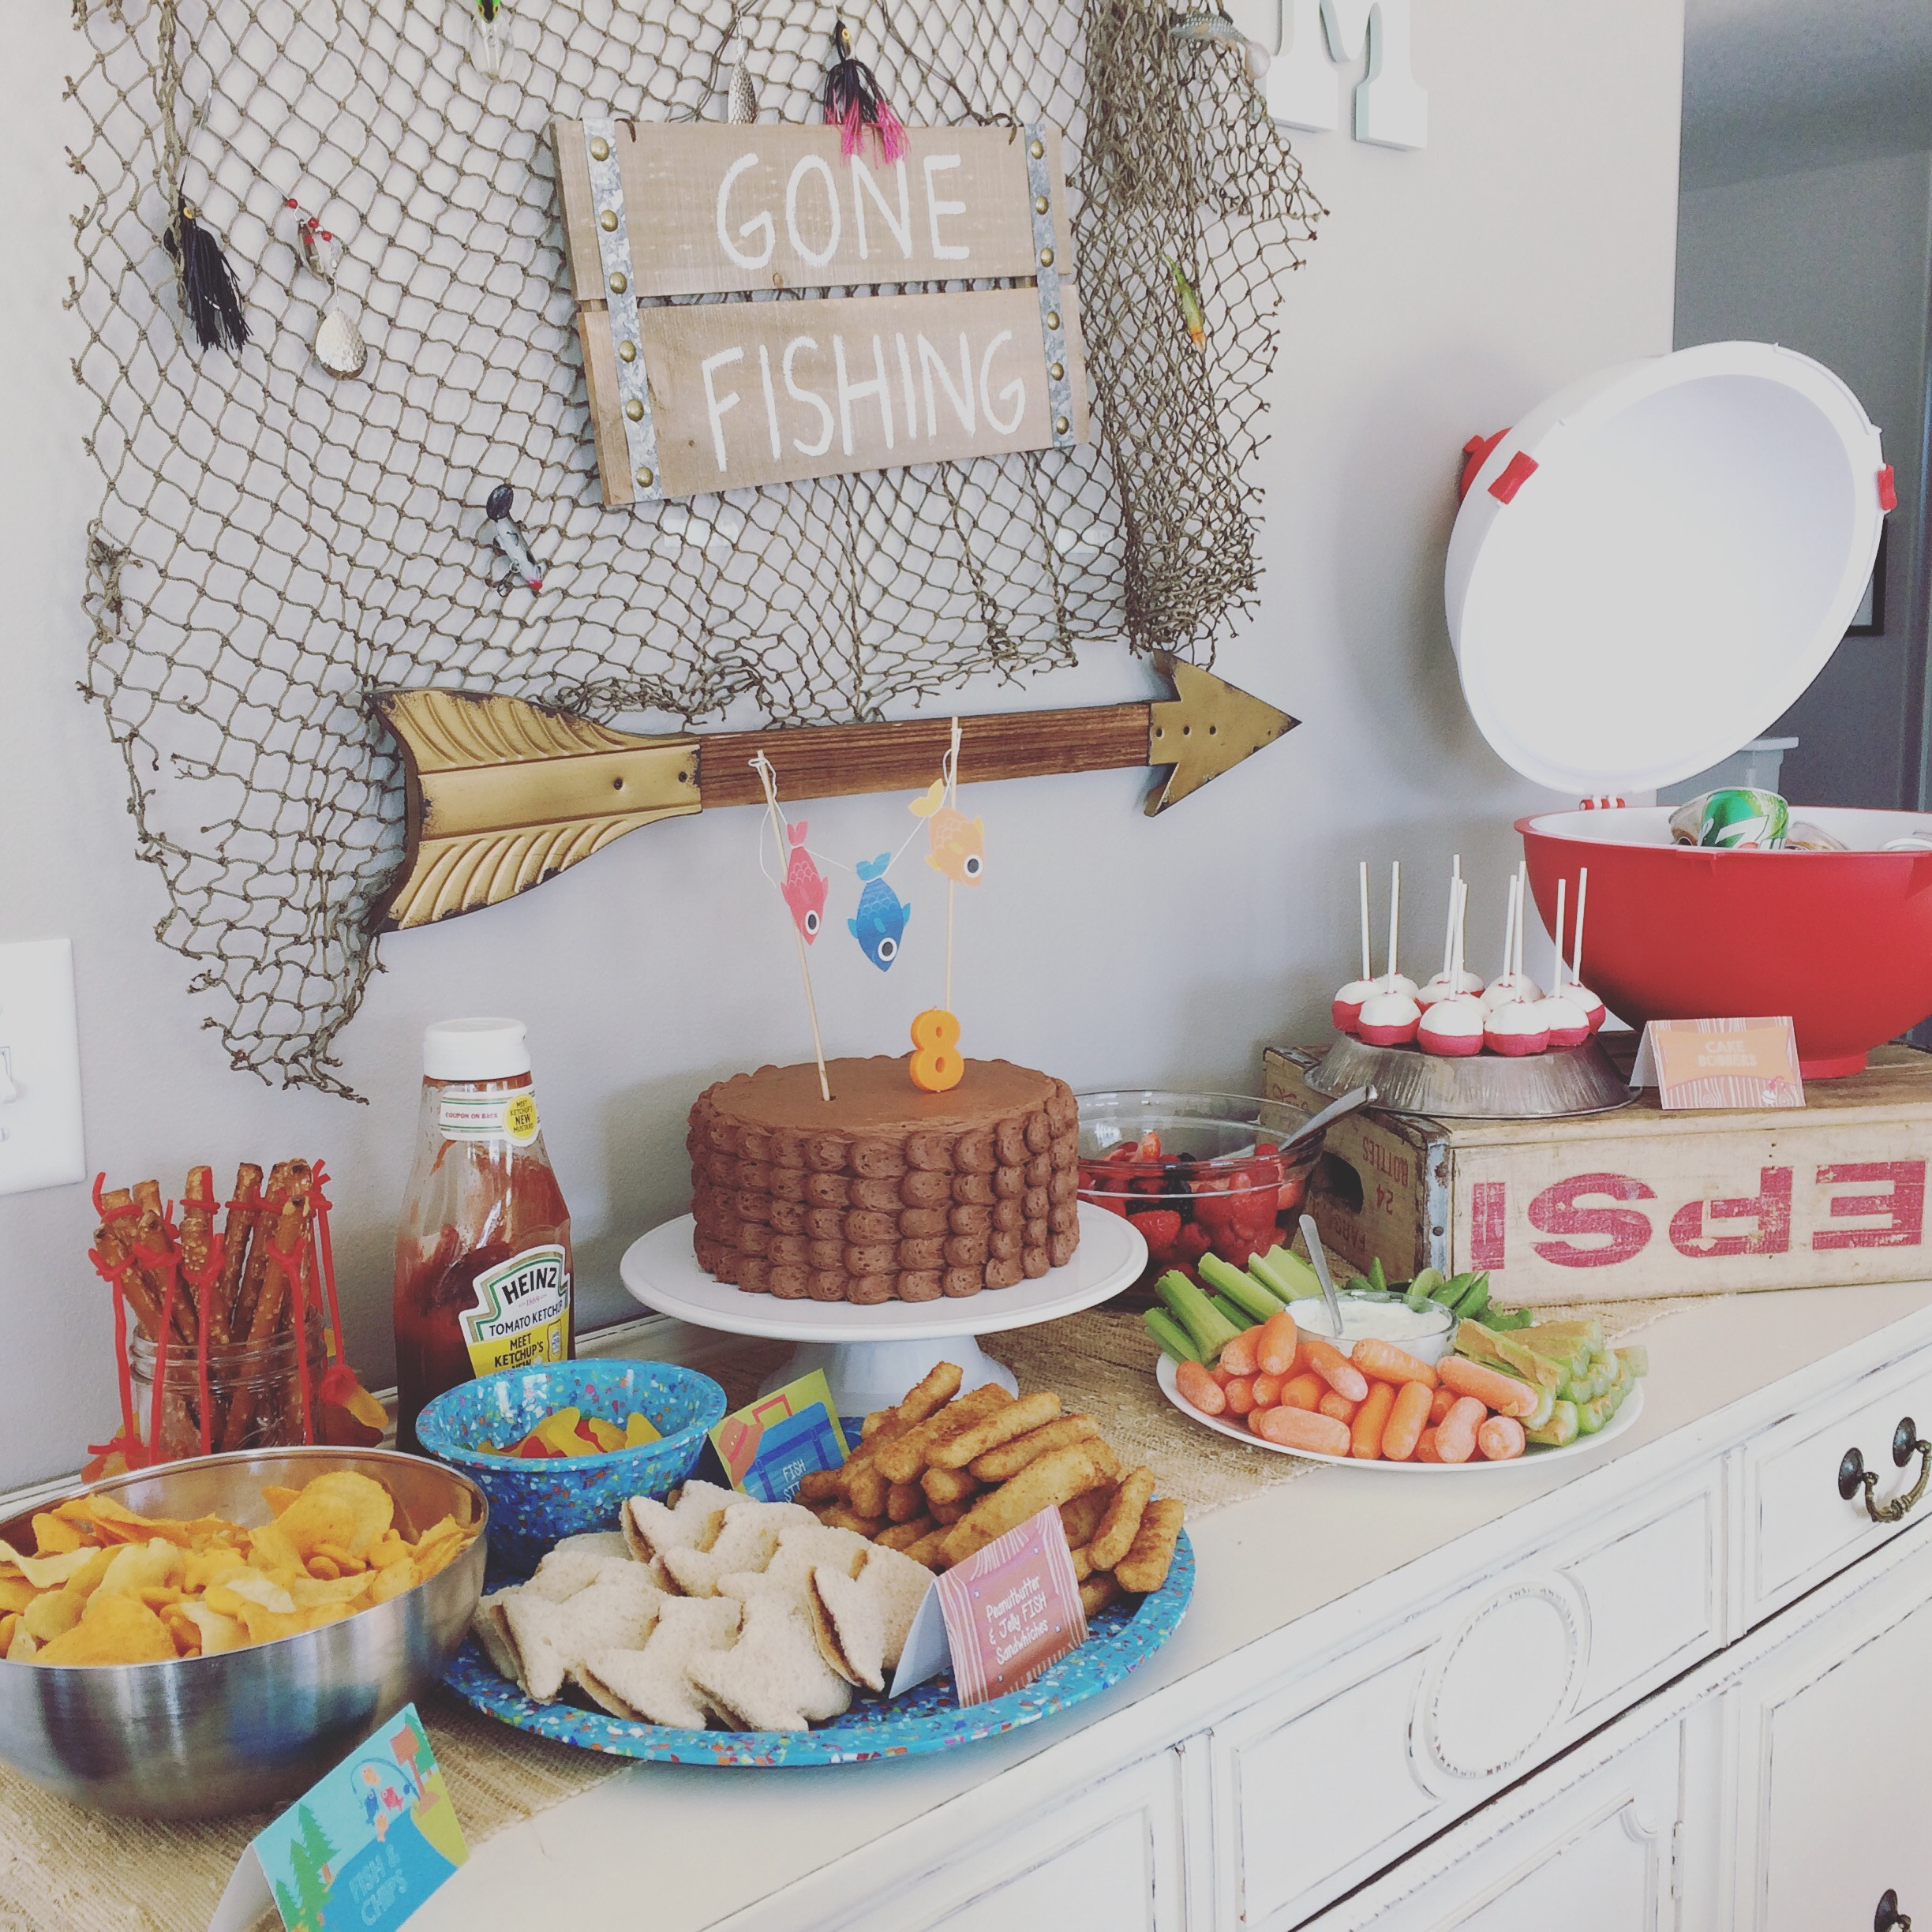 Best ideas about Fishing Birthday Decorations . Save or Pin Gone Fishing Birthday Party beingLIBBY Now.